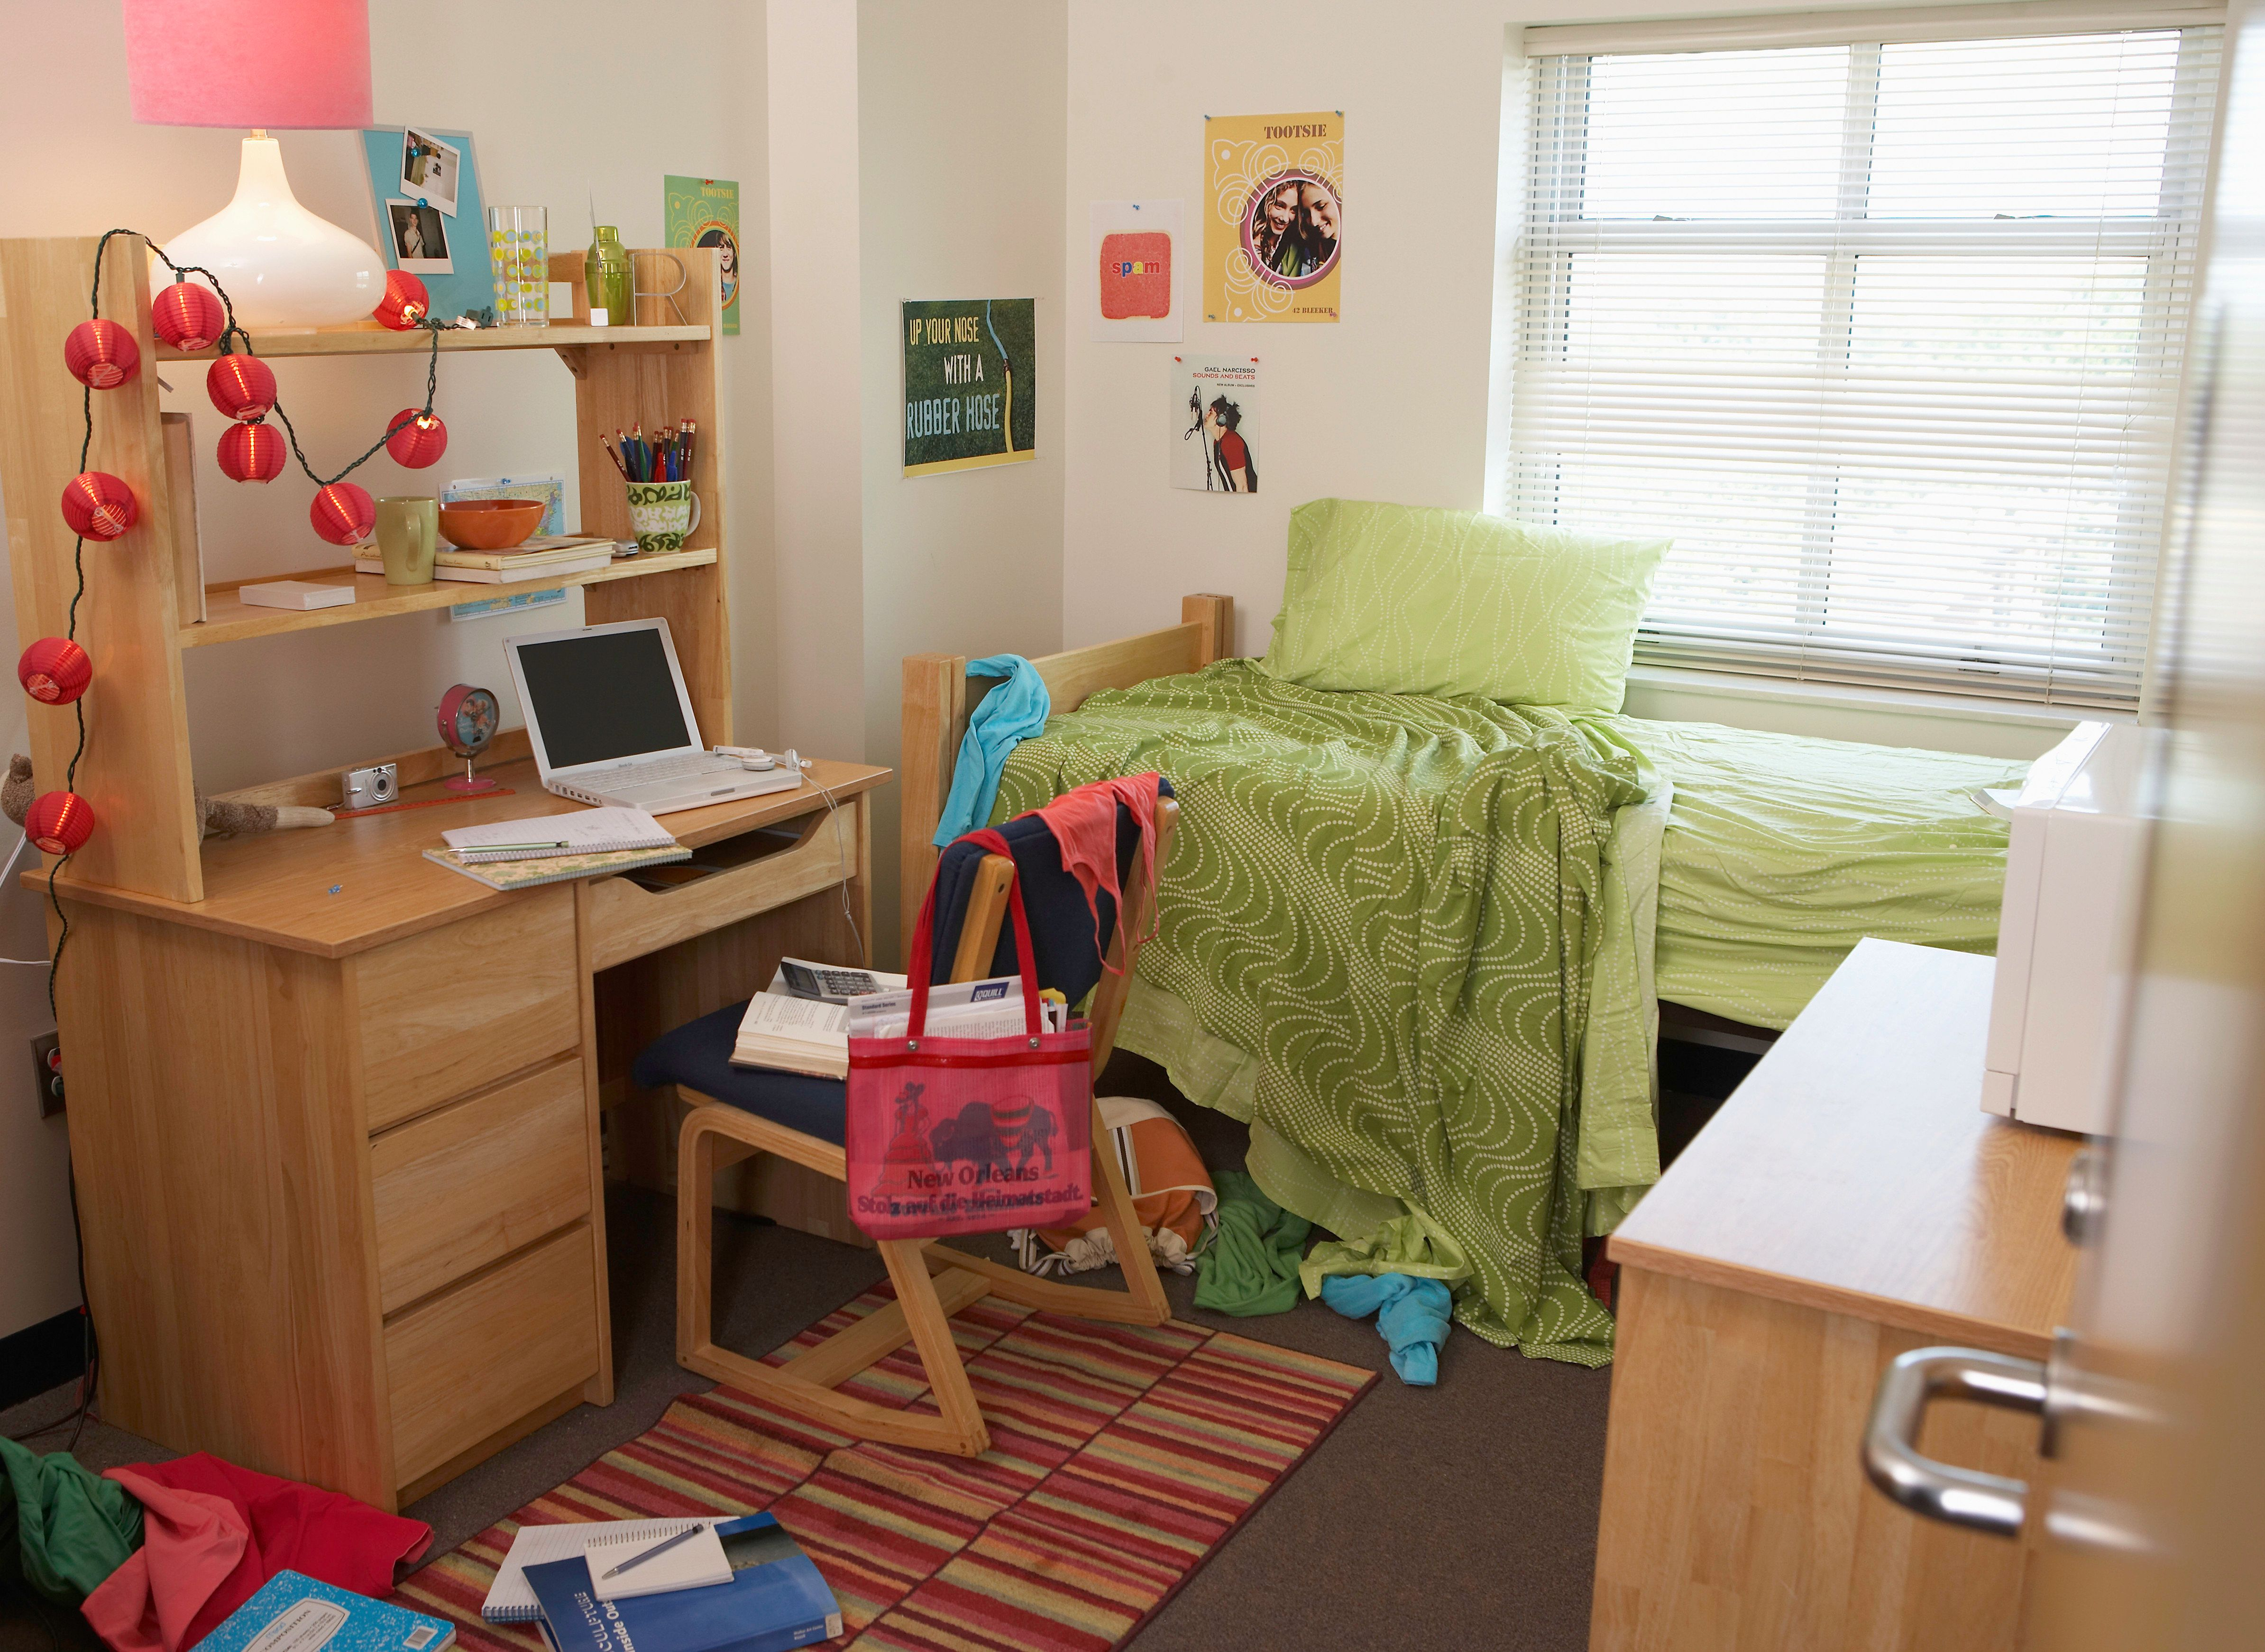 9 Things In Your Dorm That Are Wrecking Your Sleep HuffPost